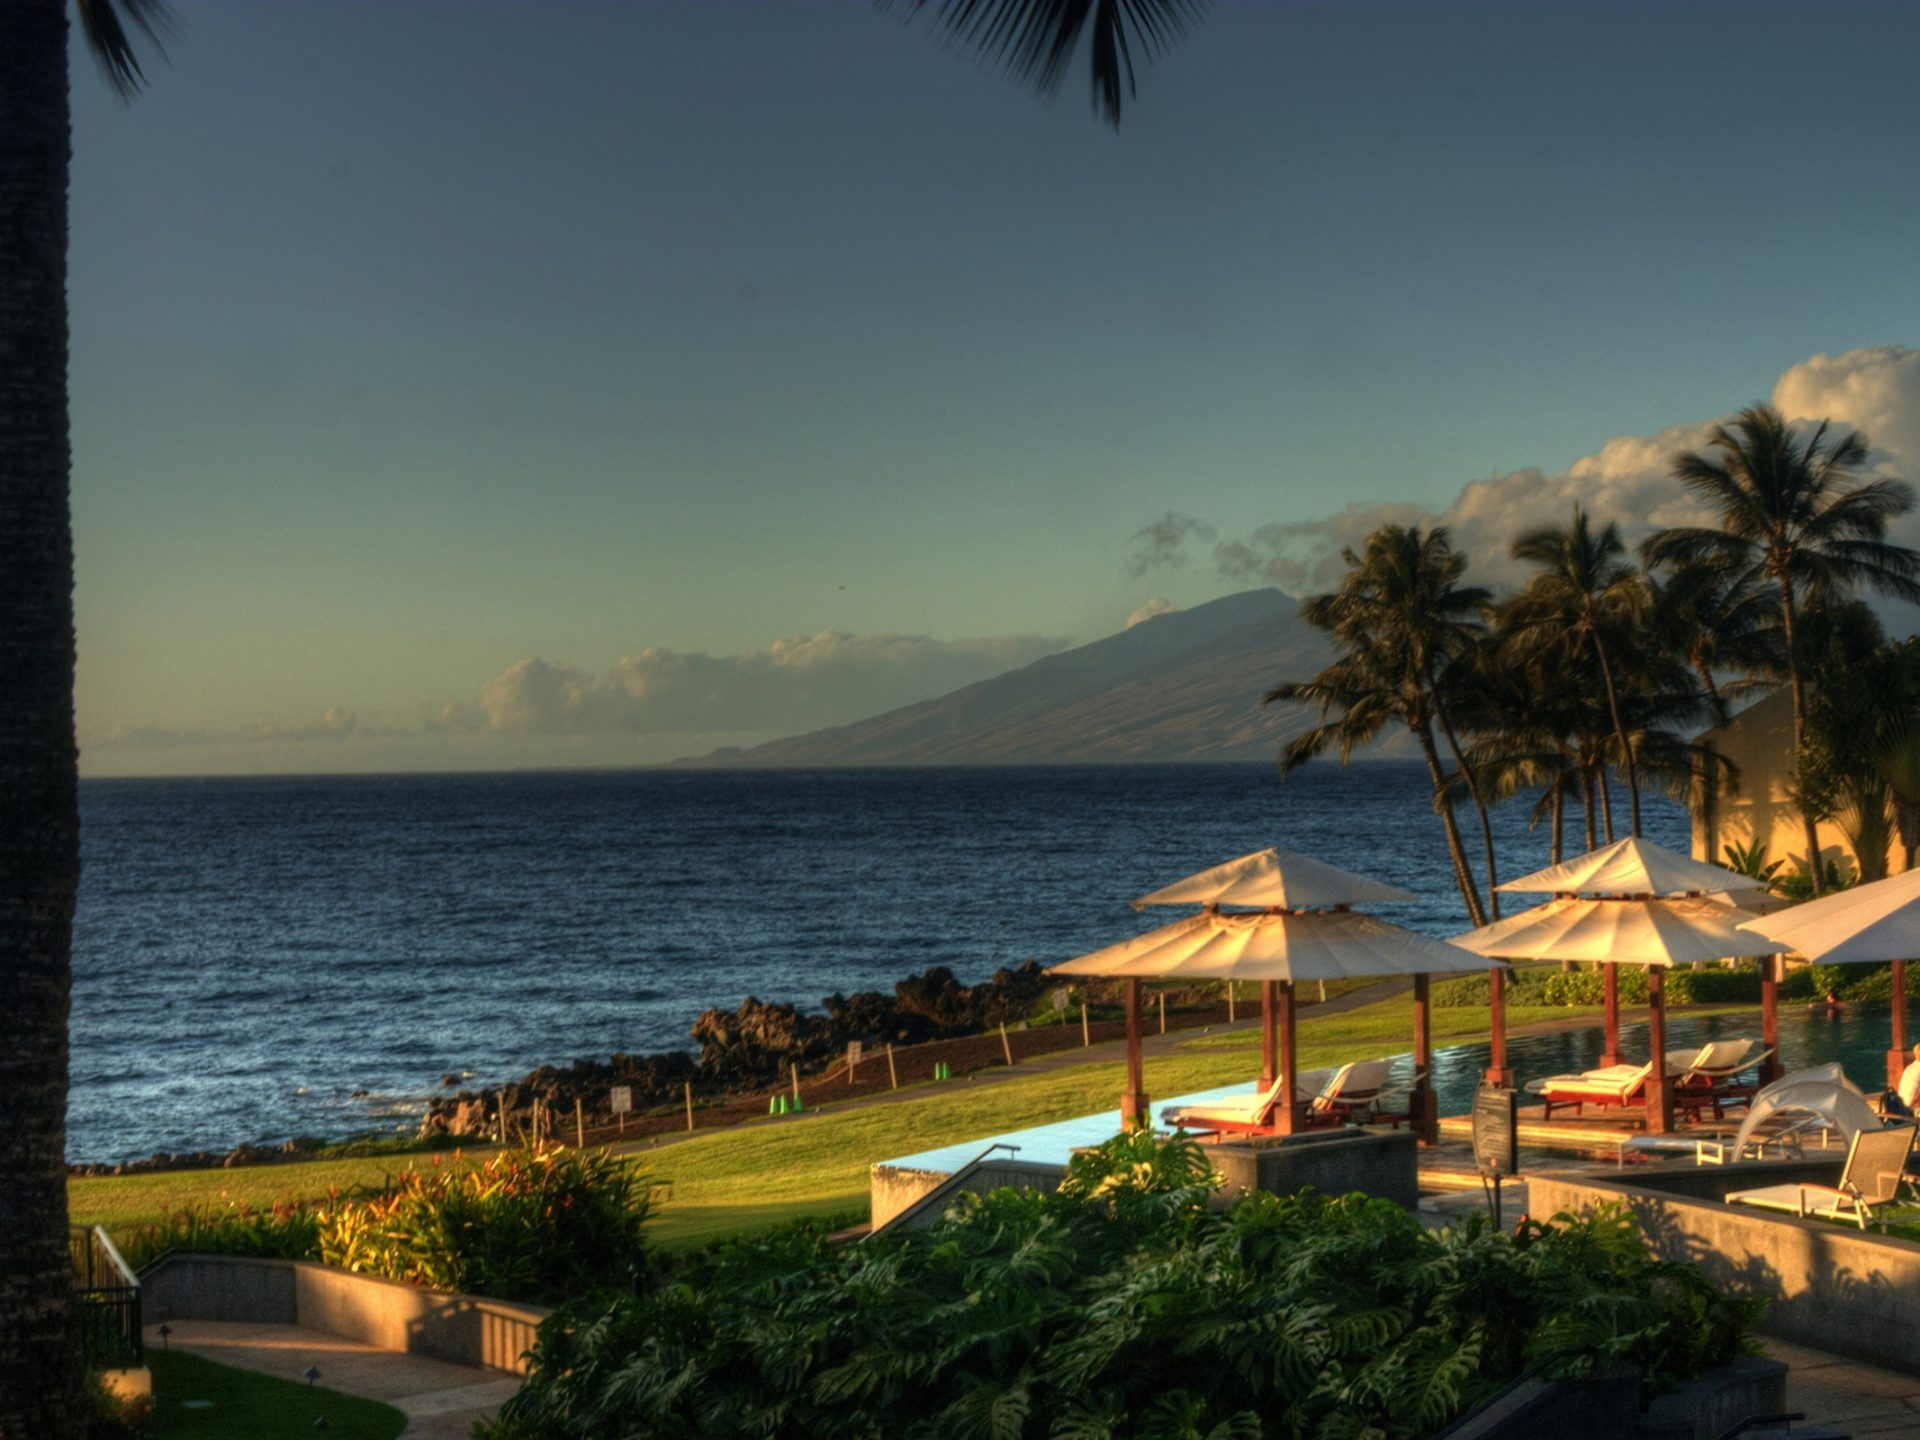 High Resolution Desktop Wallpapers Cars Wailea Maui Hawaii Desktop Background 560636